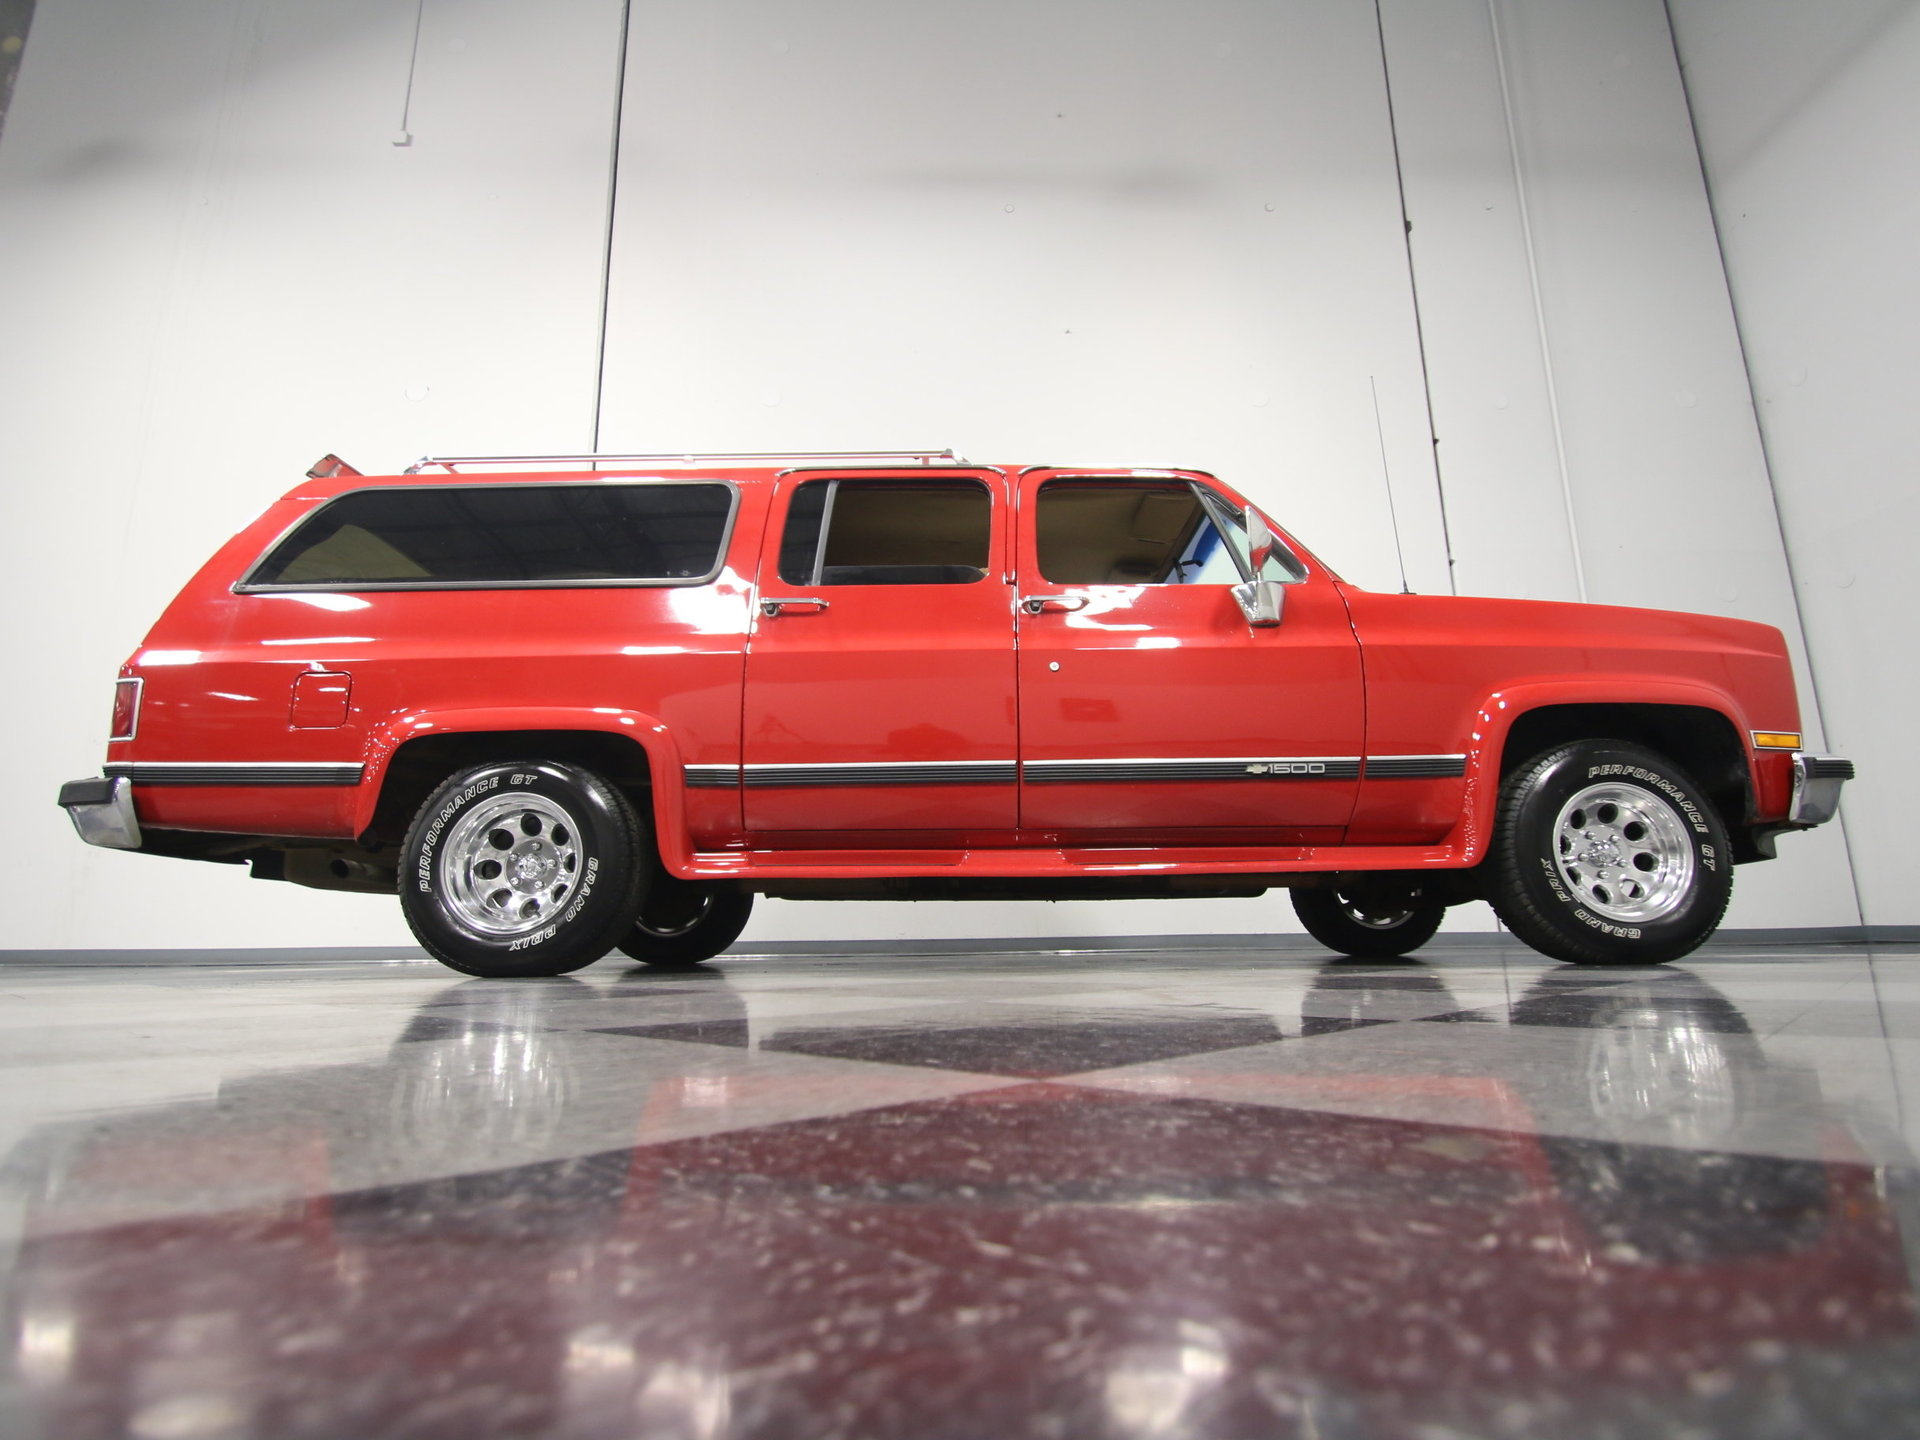 1985 Chevrolet Suburban Streetside Classics The Nations Trusted 1954 Chevy 4x4 Show More Photos